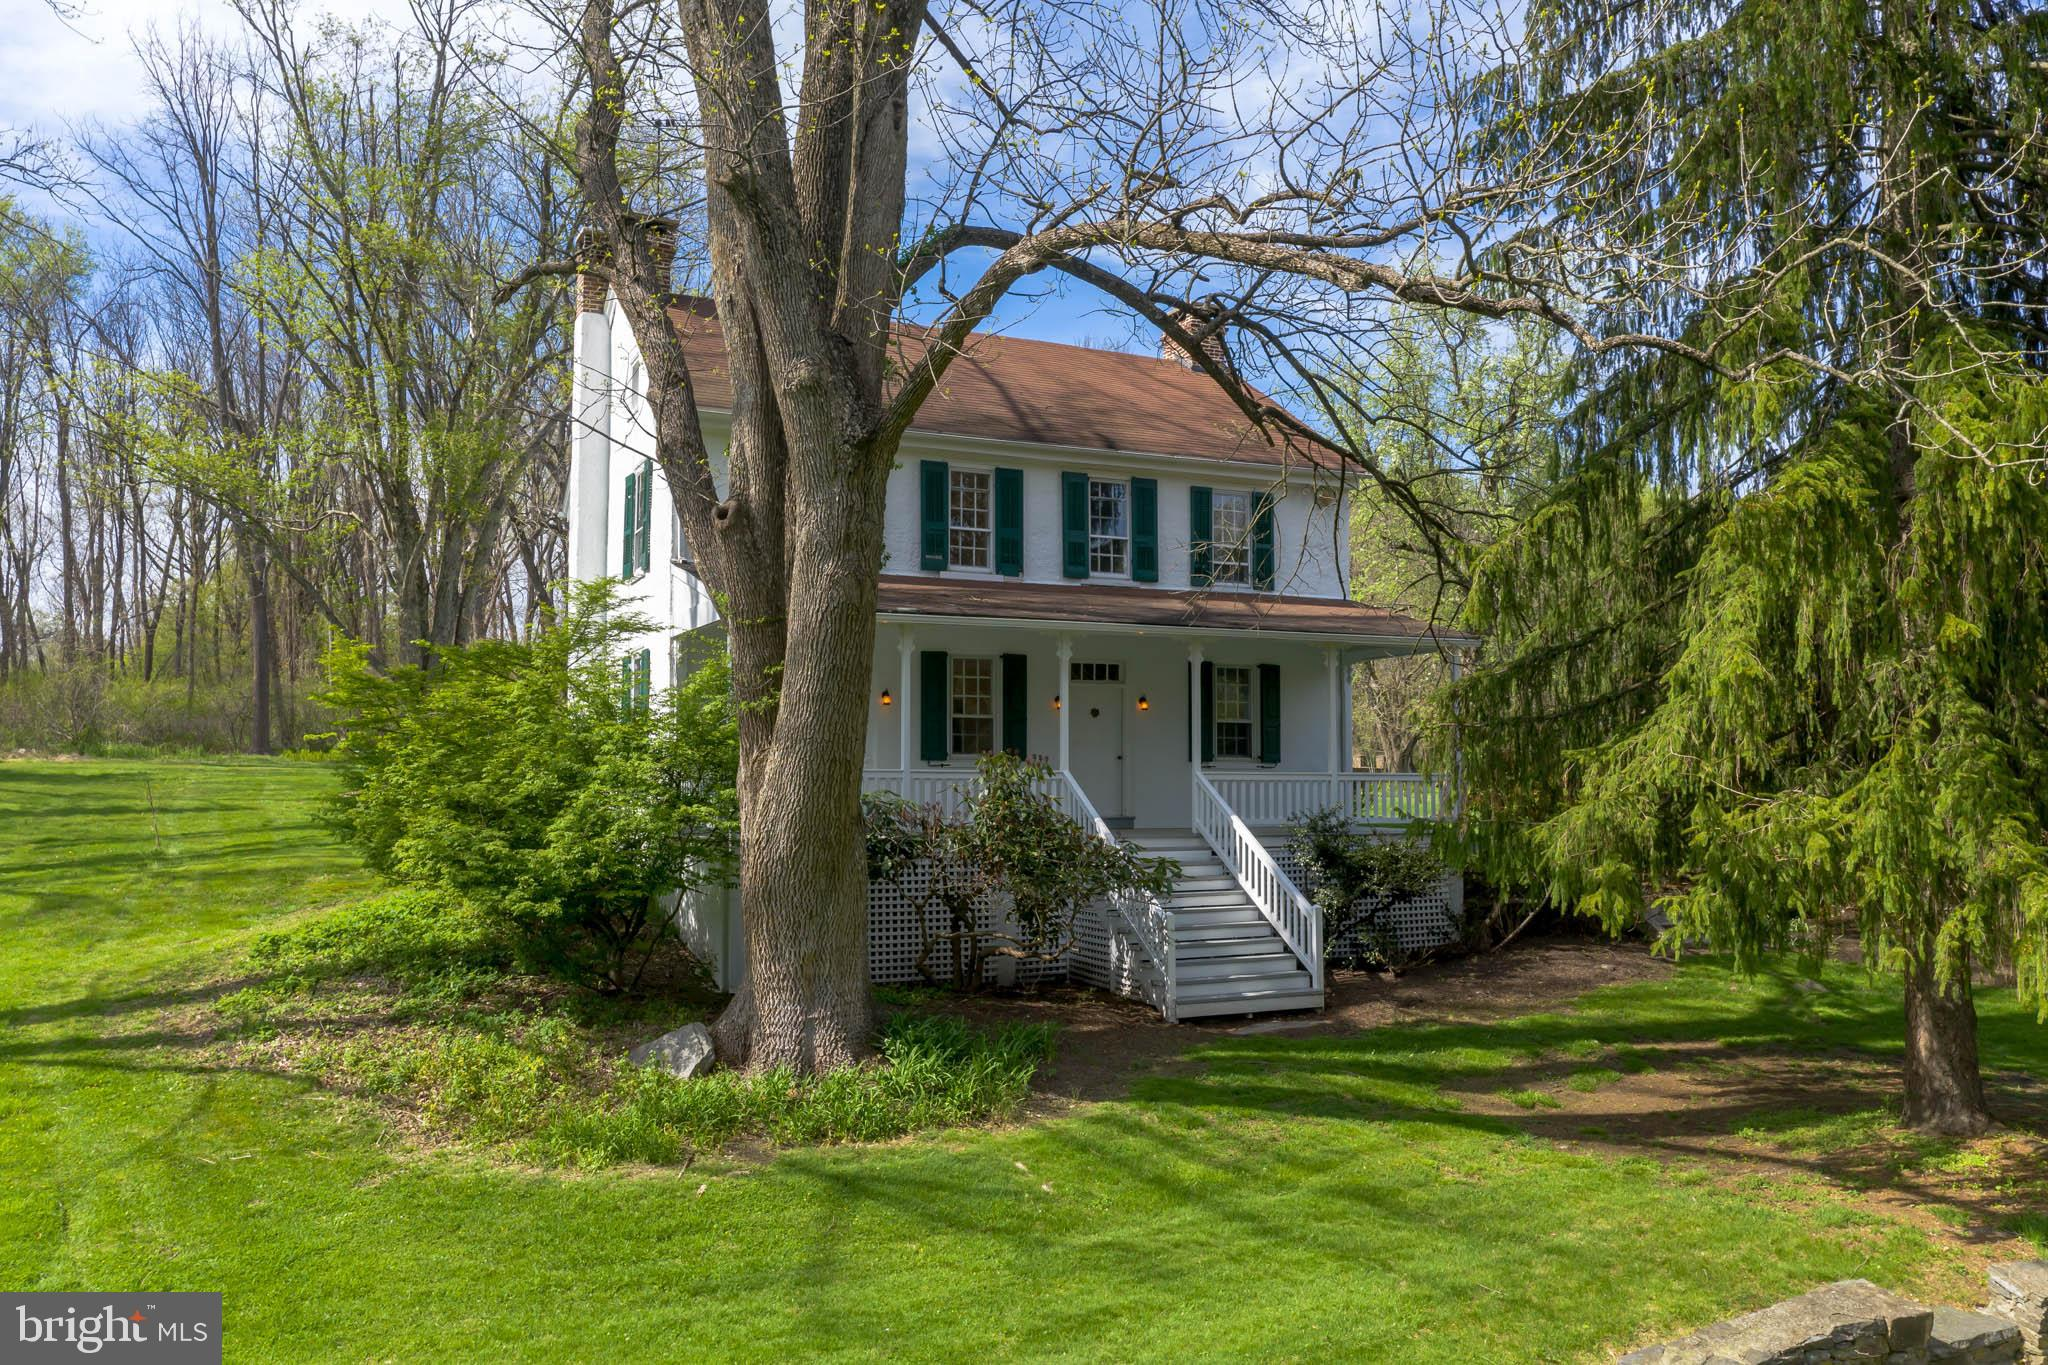 751 FAIRVIEW ROAD, GLENMOORE, PA 19343